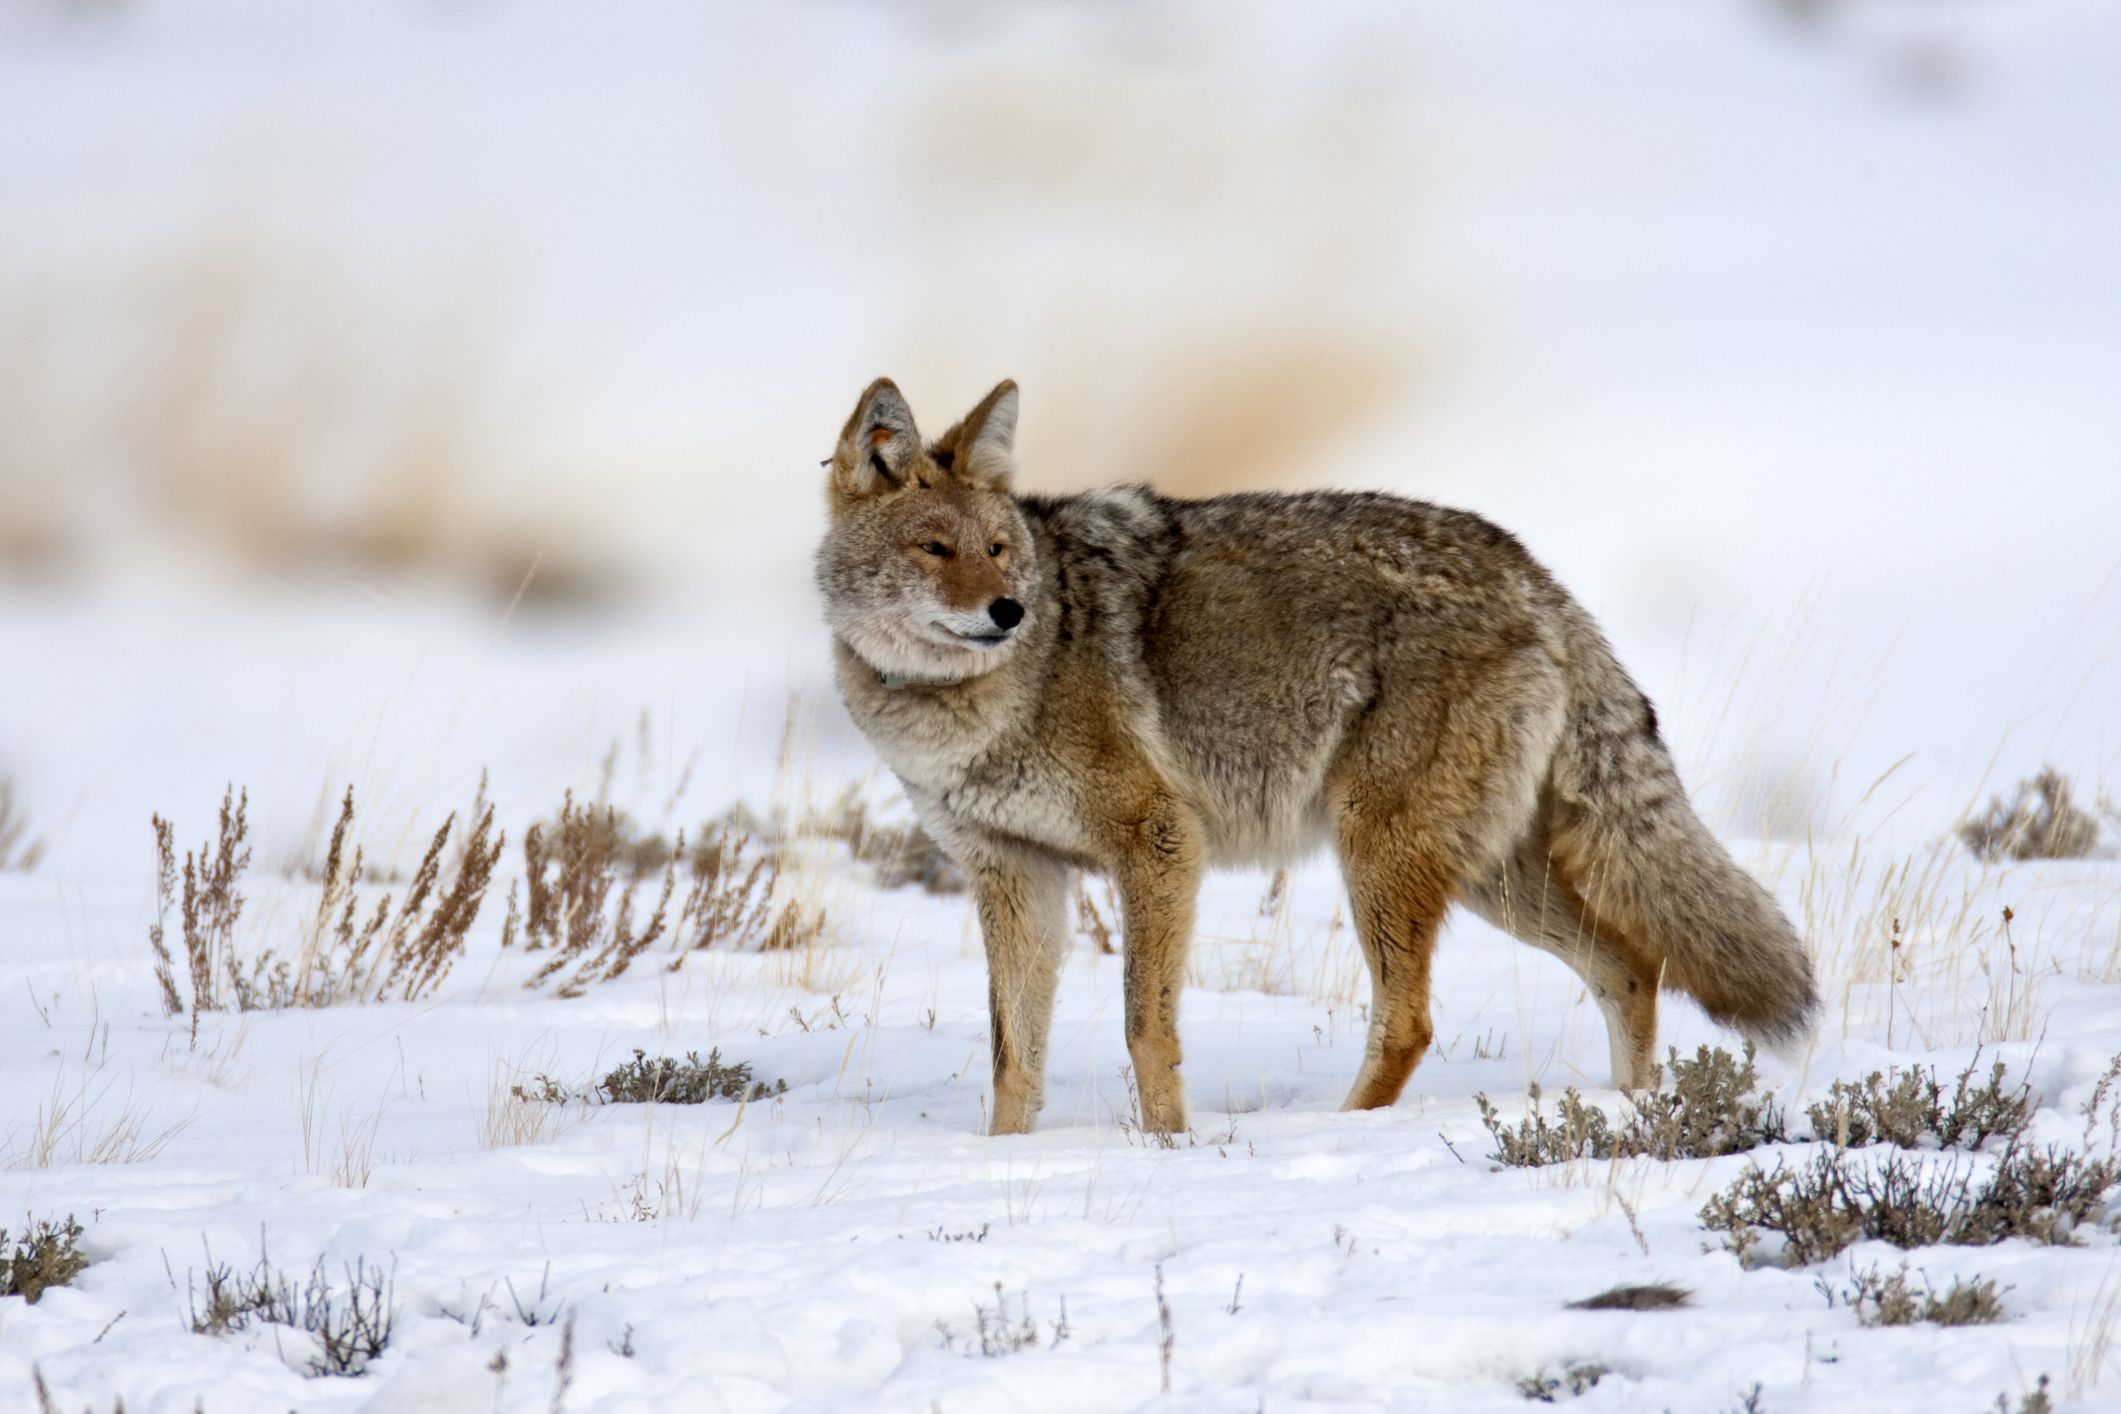 A Coyote in Yellowstone National Park in 2009.